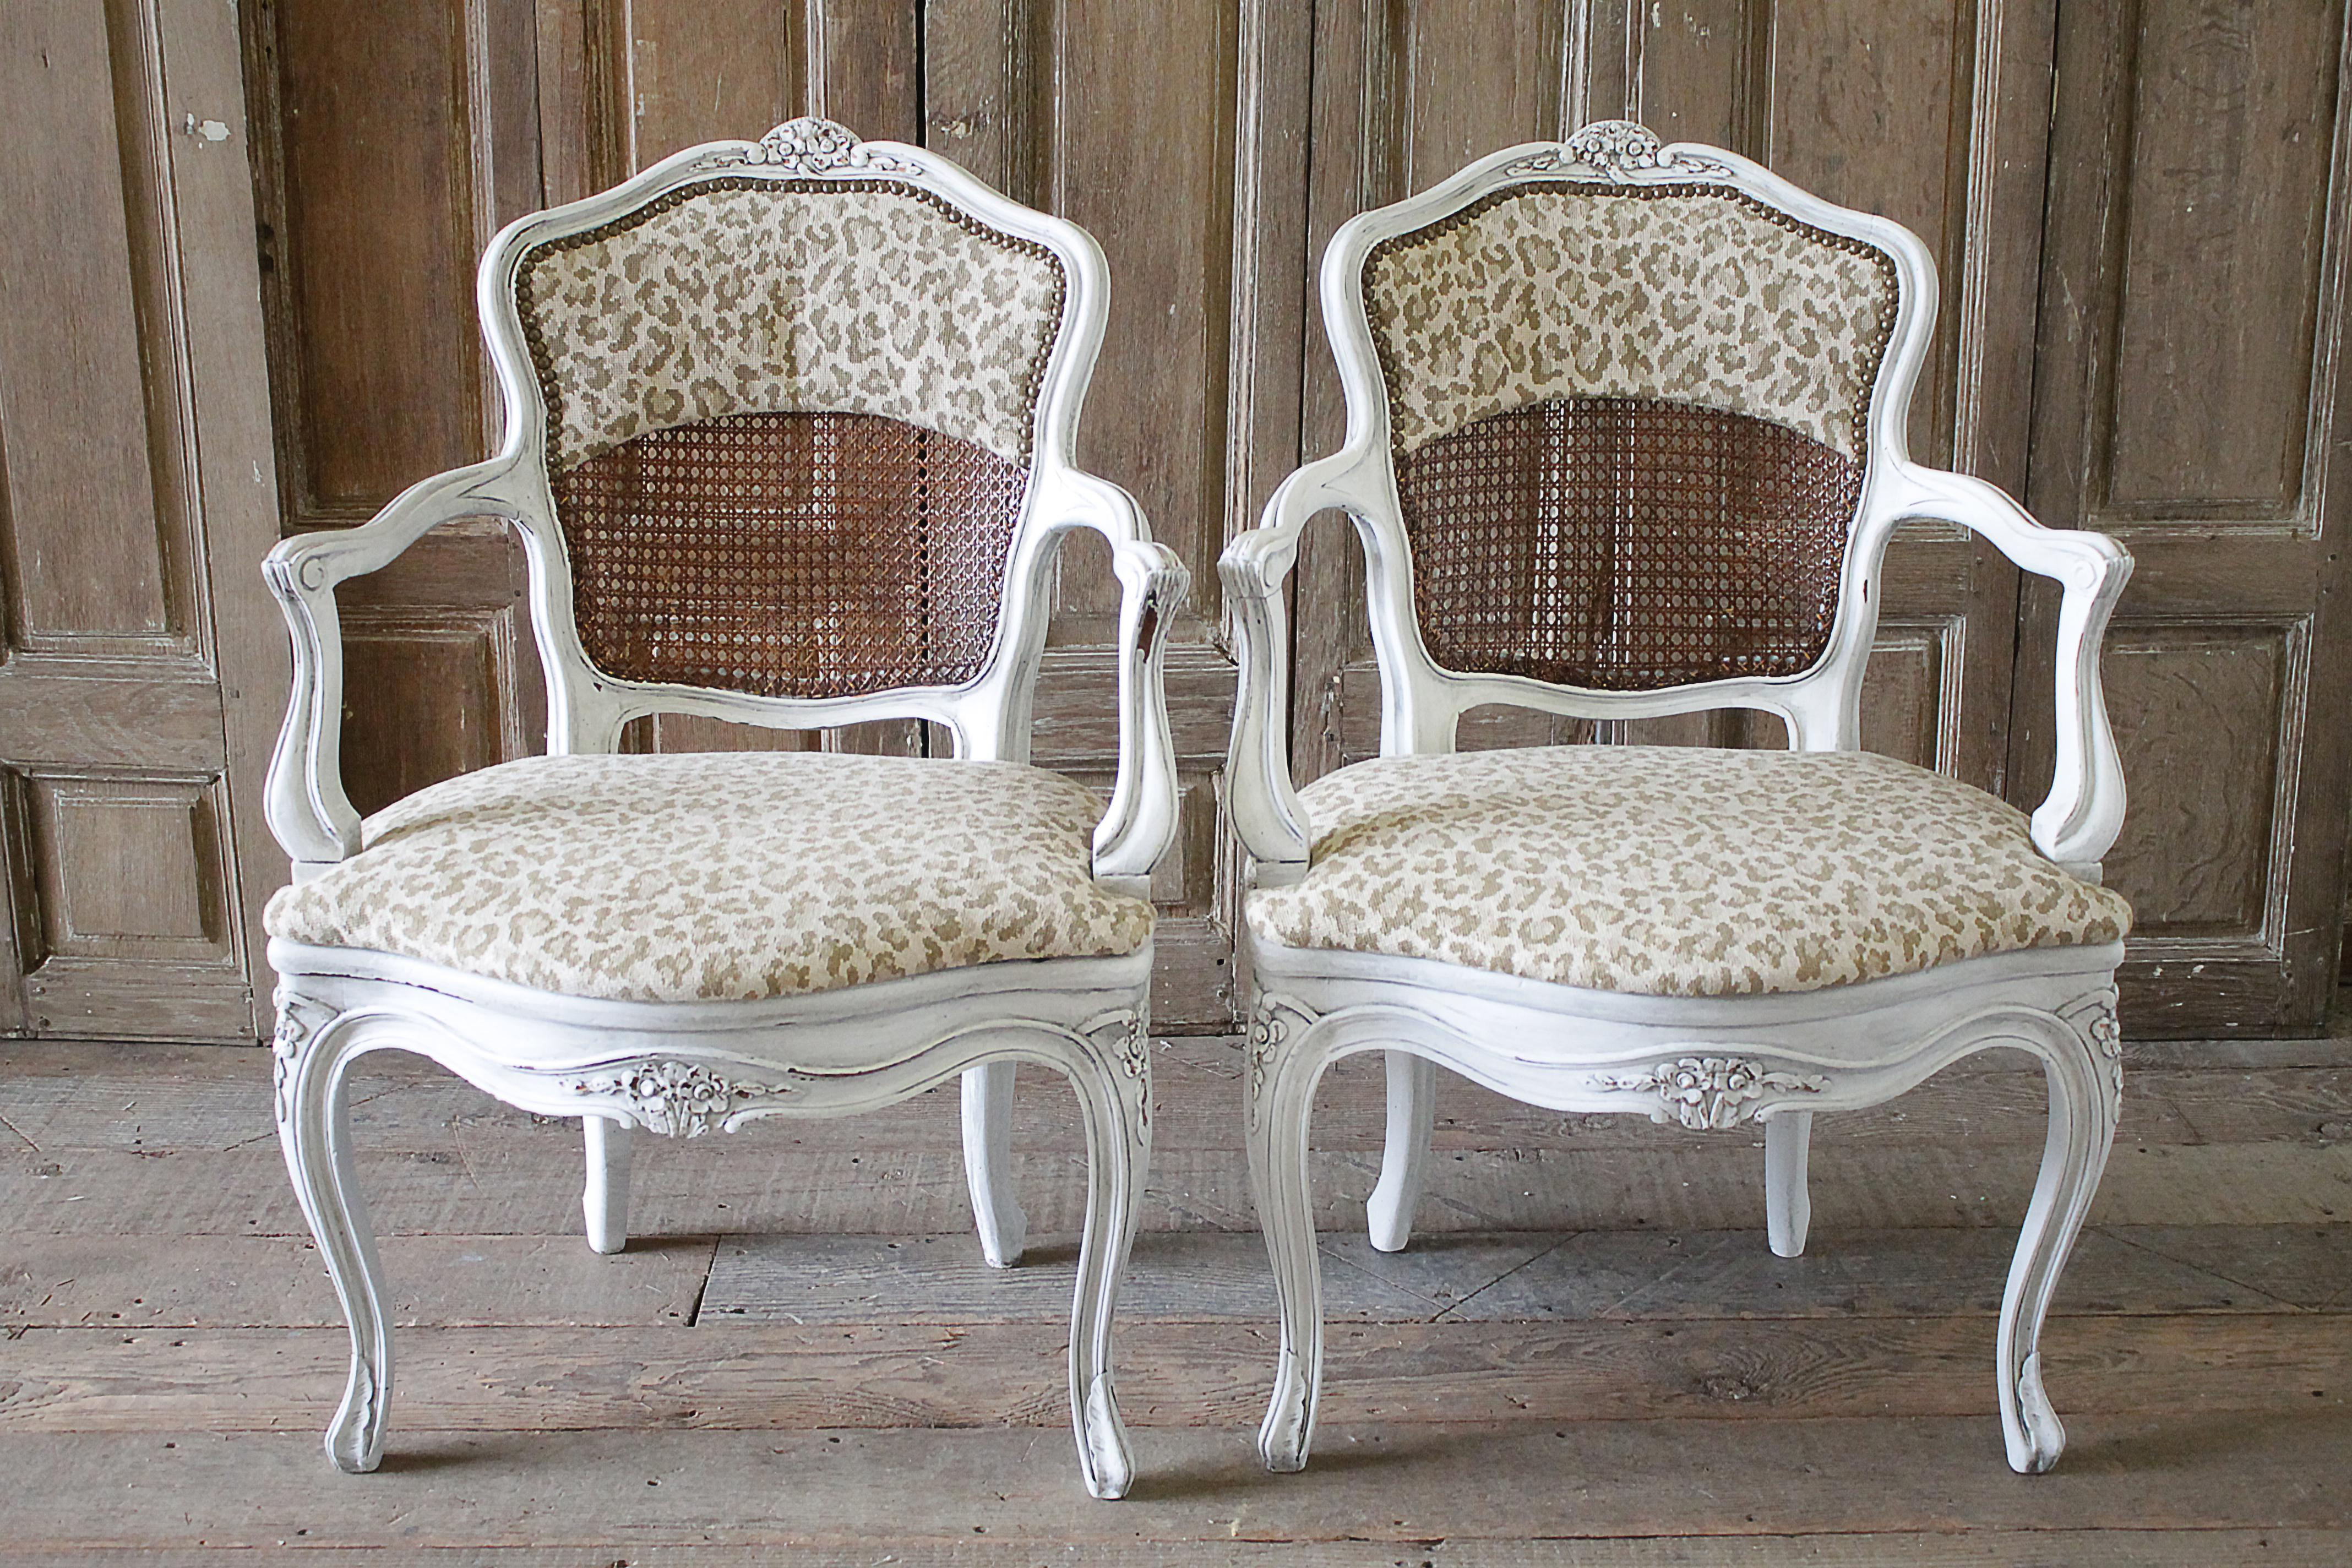 Antique Country French Cane Chairs With Leopard Upholstery   A Pair   Image  9 Of 9